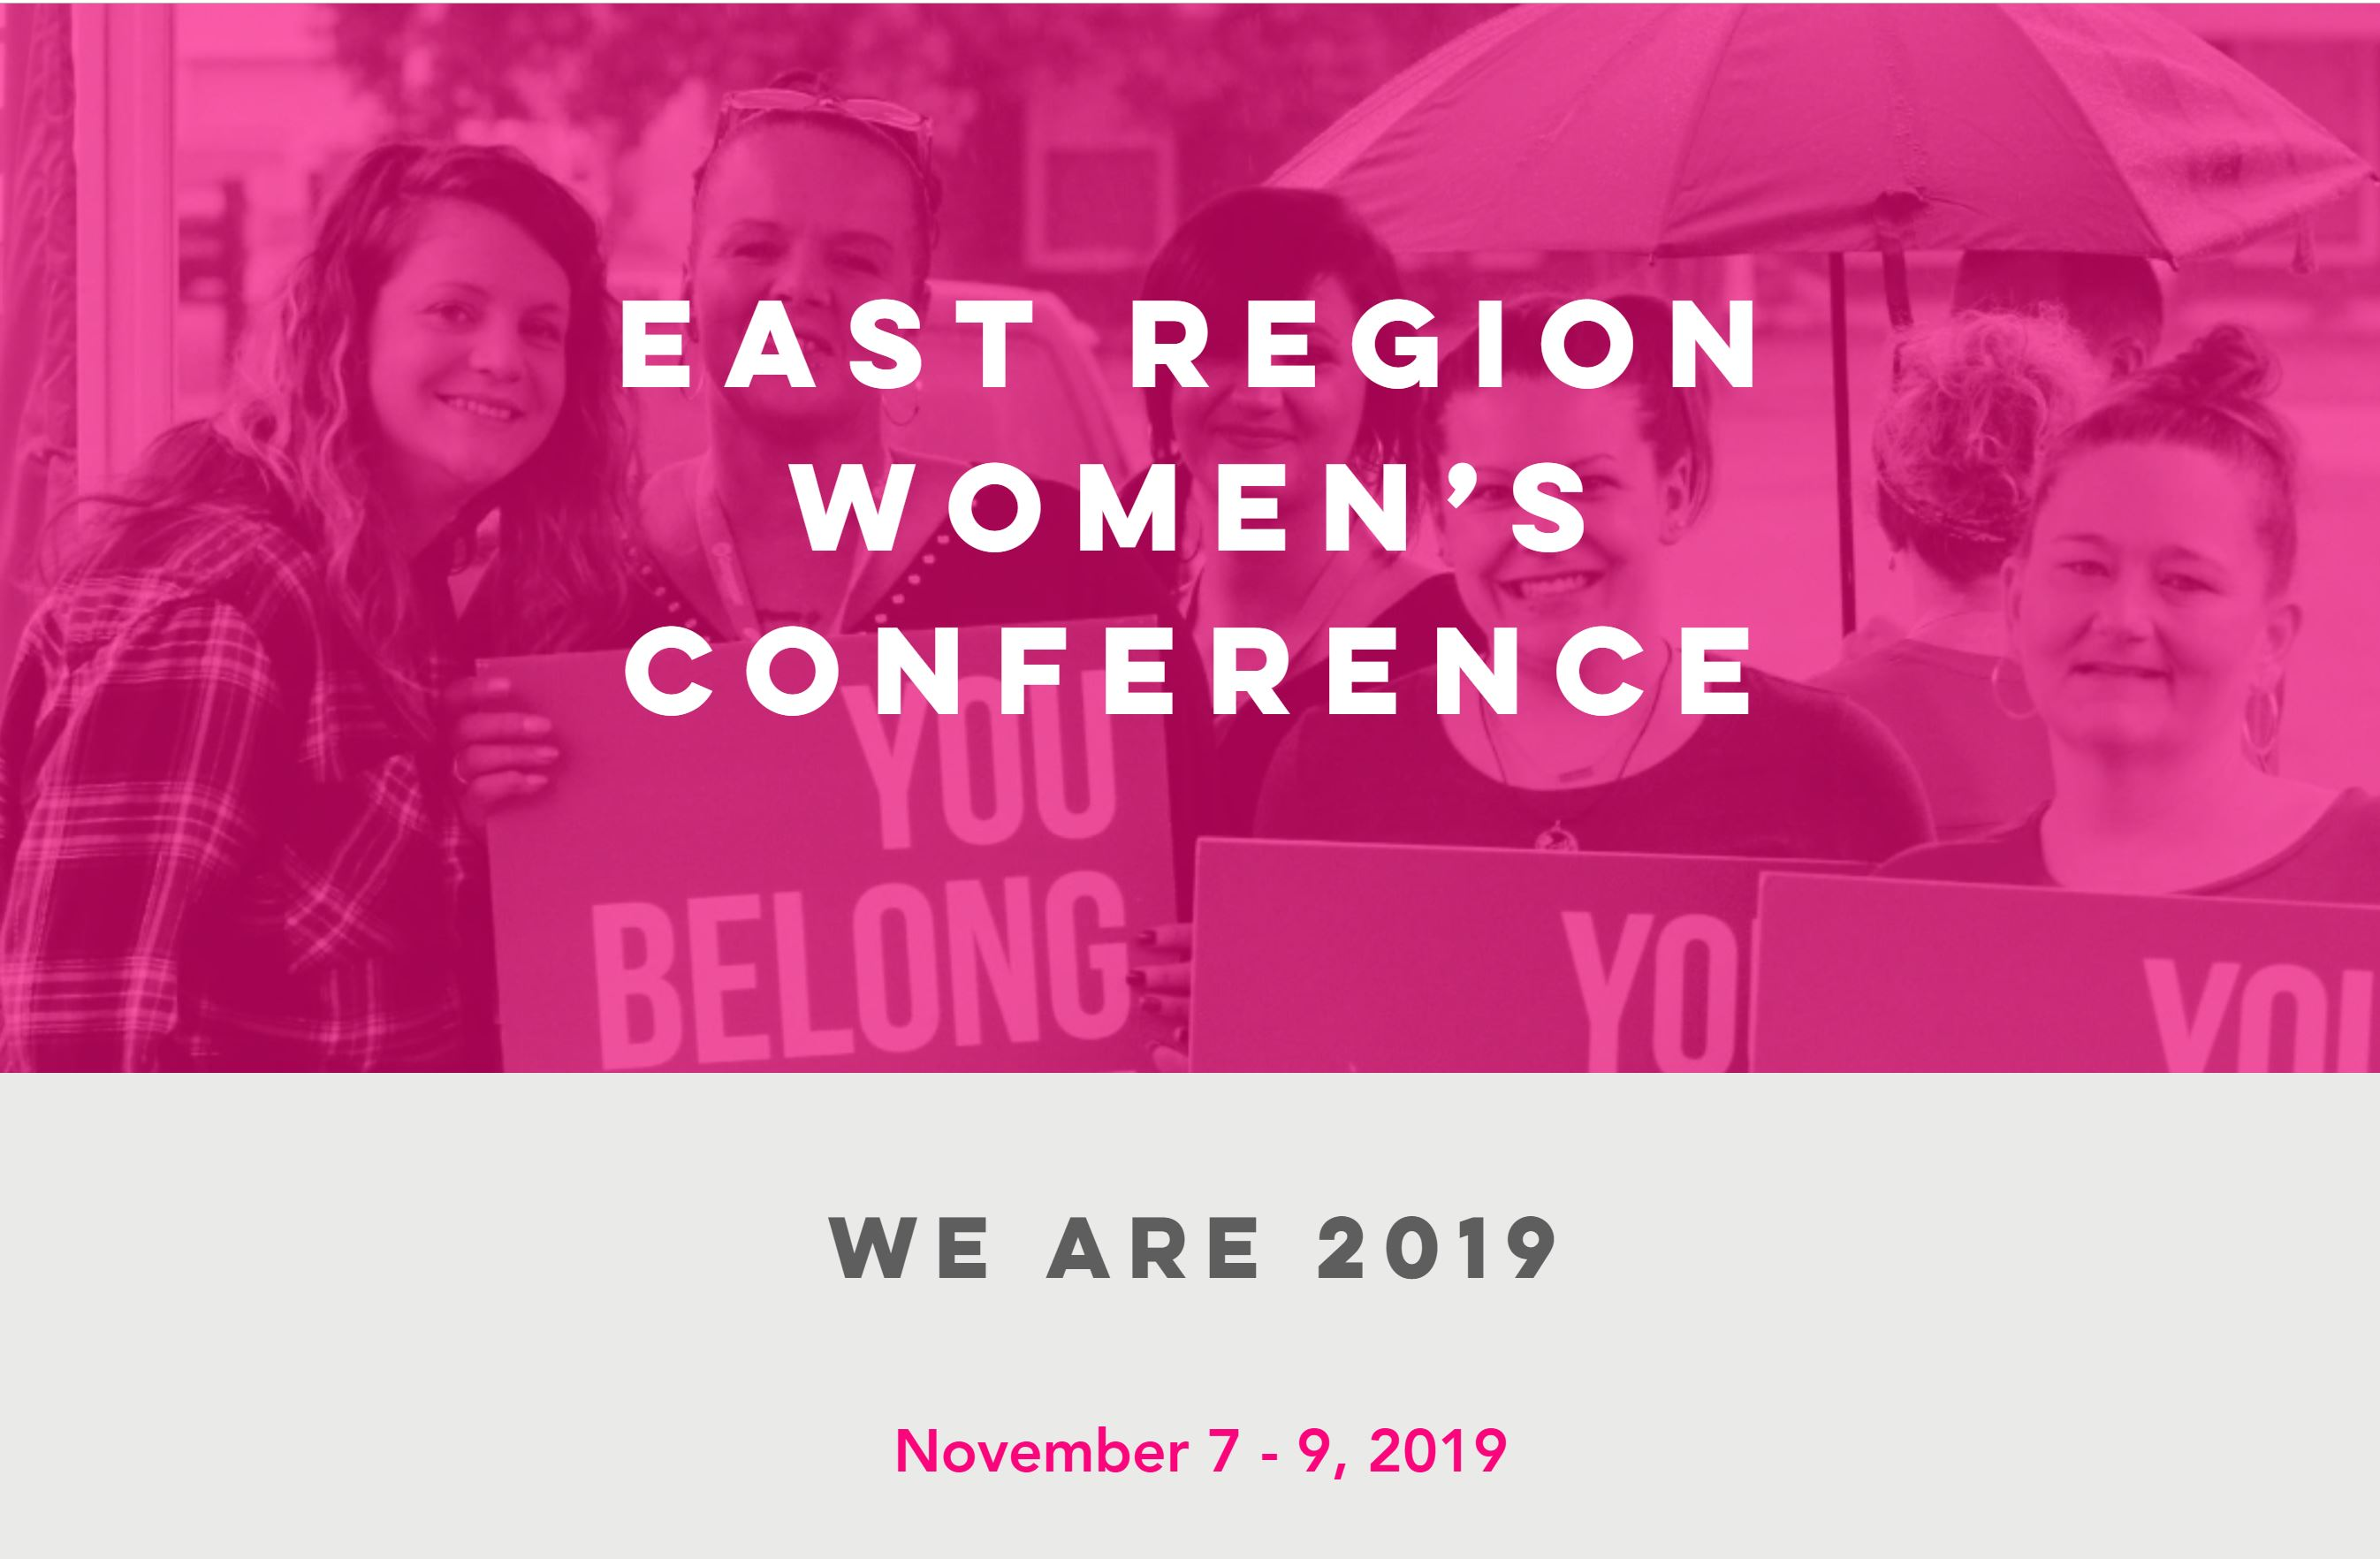 We Are Women's Conference 2019 - East Region logo